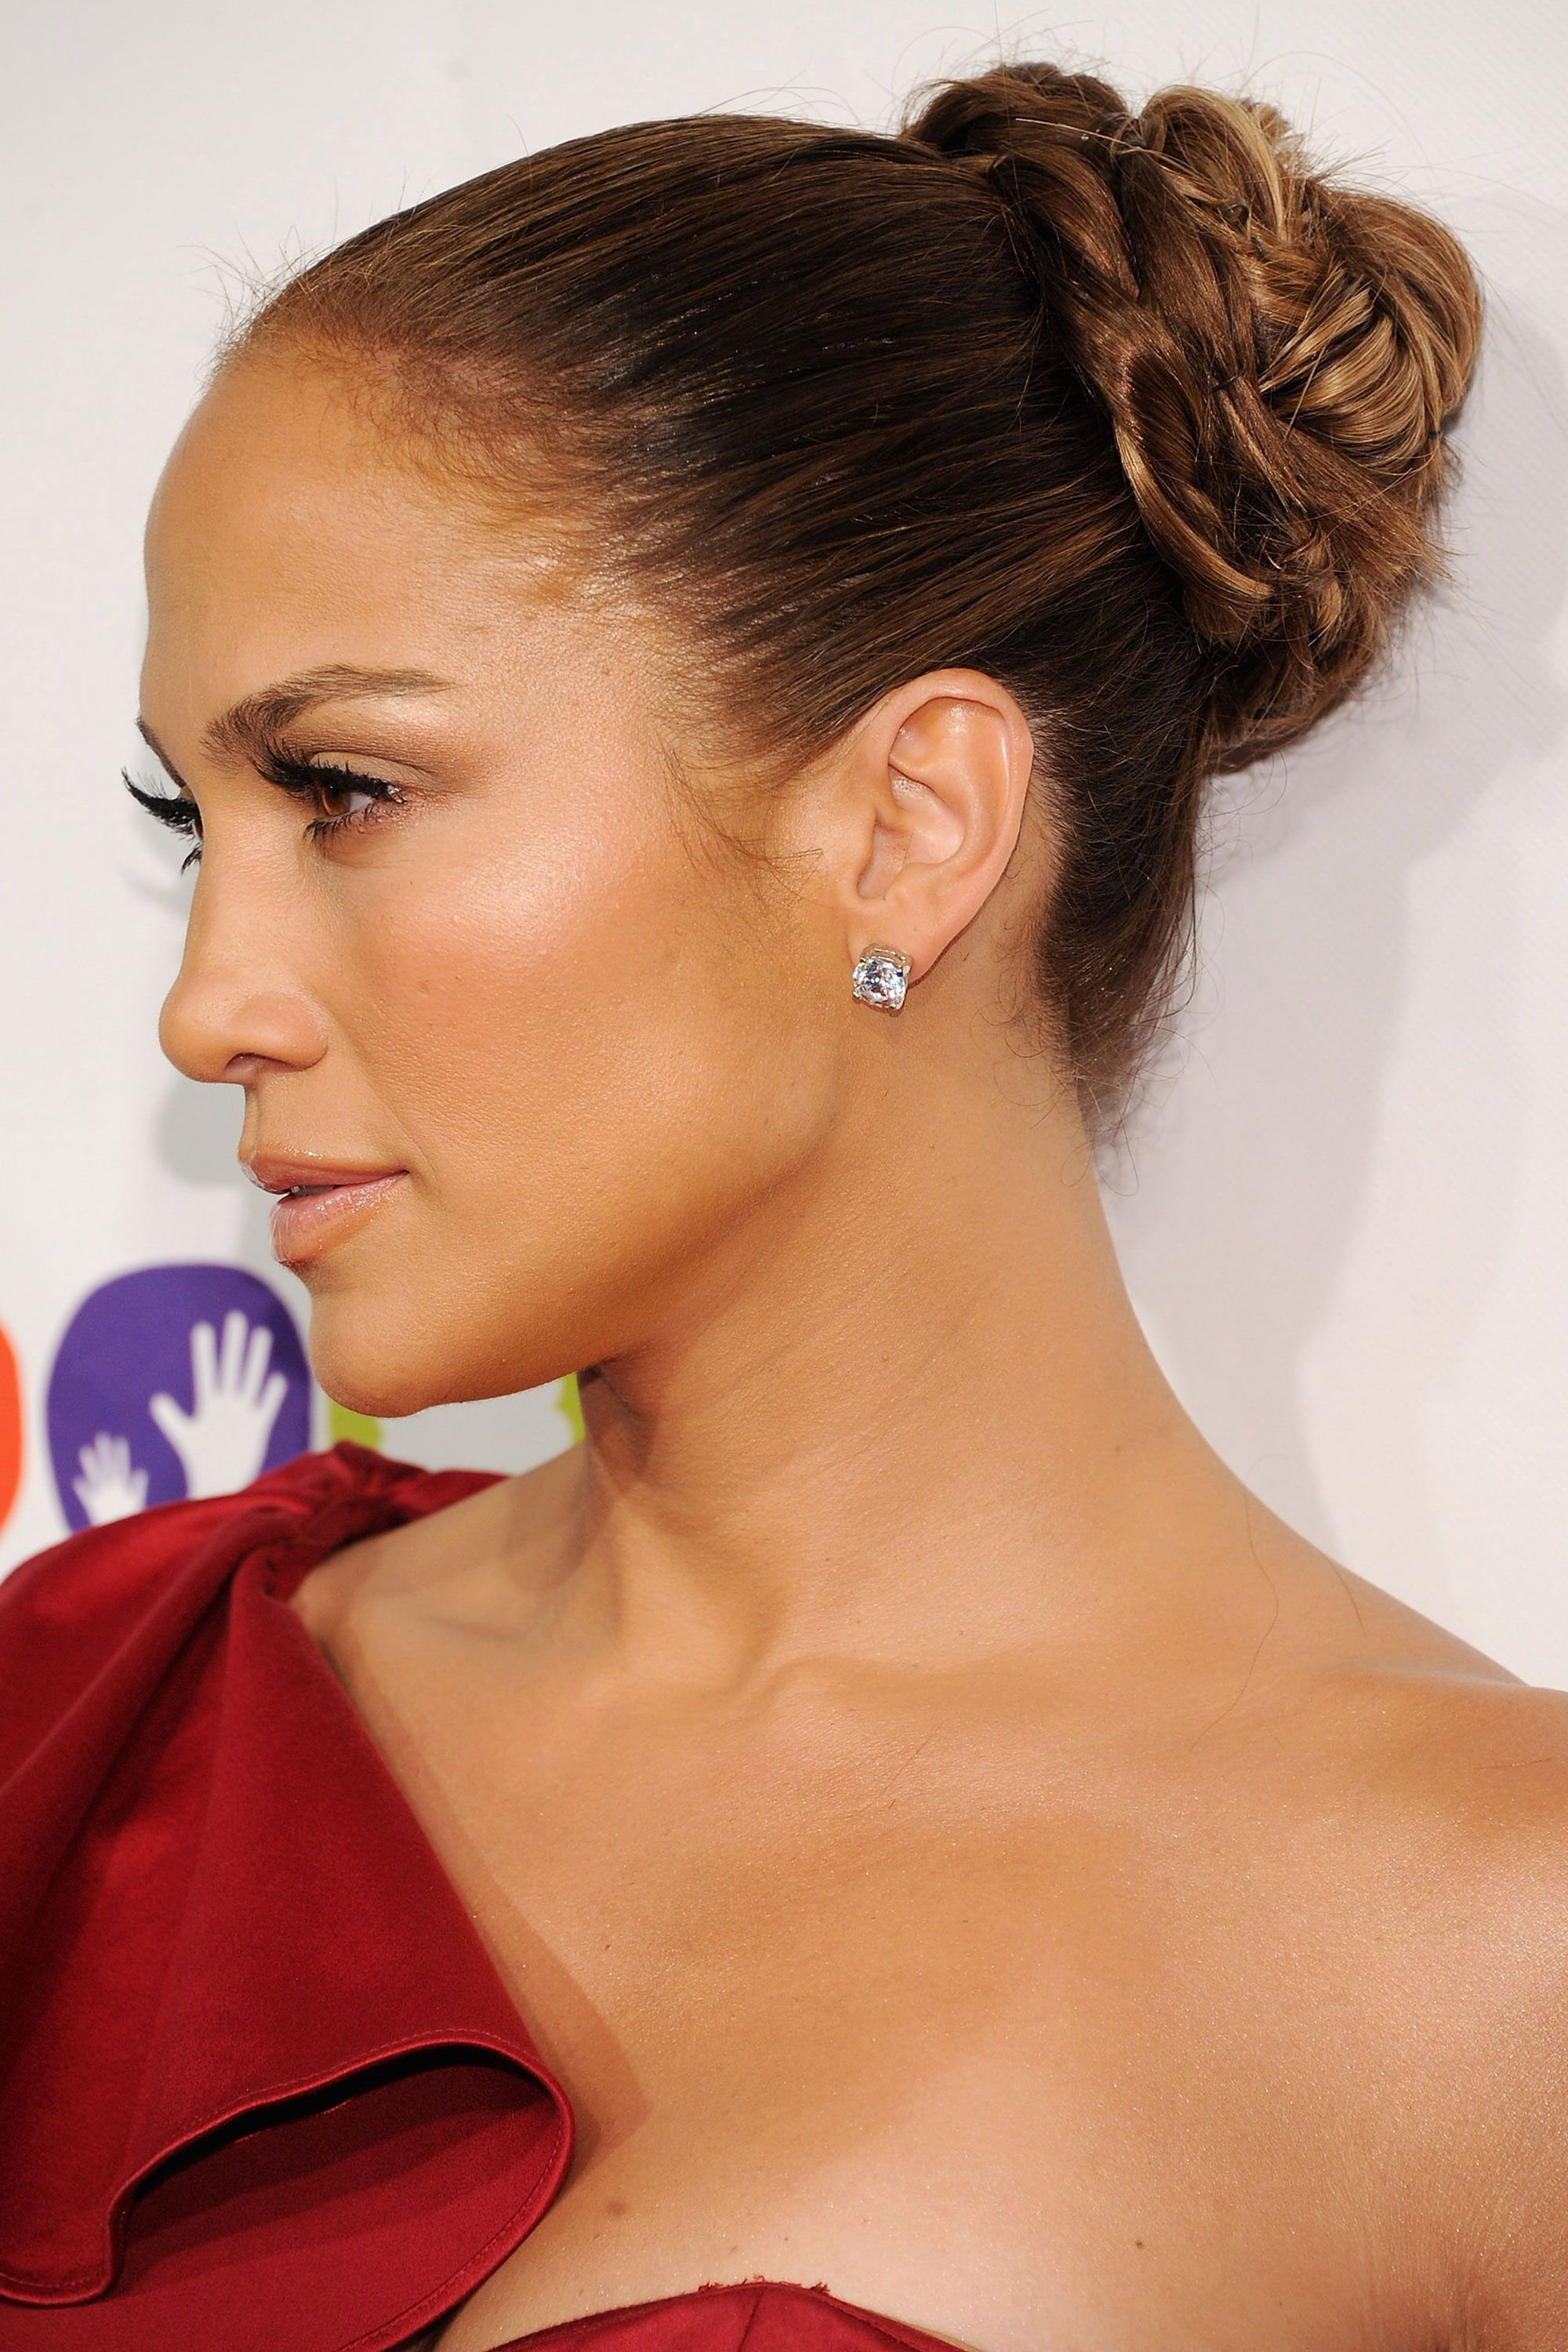 "<p>If you've ever braided the end of your ponytail before, you can easily recreate Jennifer Lopez's same look with&nbsp&#x3B;one extra step, according to <a href=""https://www.joico.com/"" target=""_blank"">Joico</a>'s celebrity hairstylist, <a href=""https://www.instagram.com/paulnortonhair/?hl=en"">Paul Norton</a>.&nbsp&#x3B;Start by&nbsp&#x3B;gathering your hair into a high pony, braiding it, and securing the end with a hair tie. Then, wrap the lengthy braid around the base of your ponytail, anchoring it down with bobby pins. Keep the braid tight and polished or&nbsp&#x3B;give it more texture by gently tugging the braid apart before wrapping it up and around the pony.